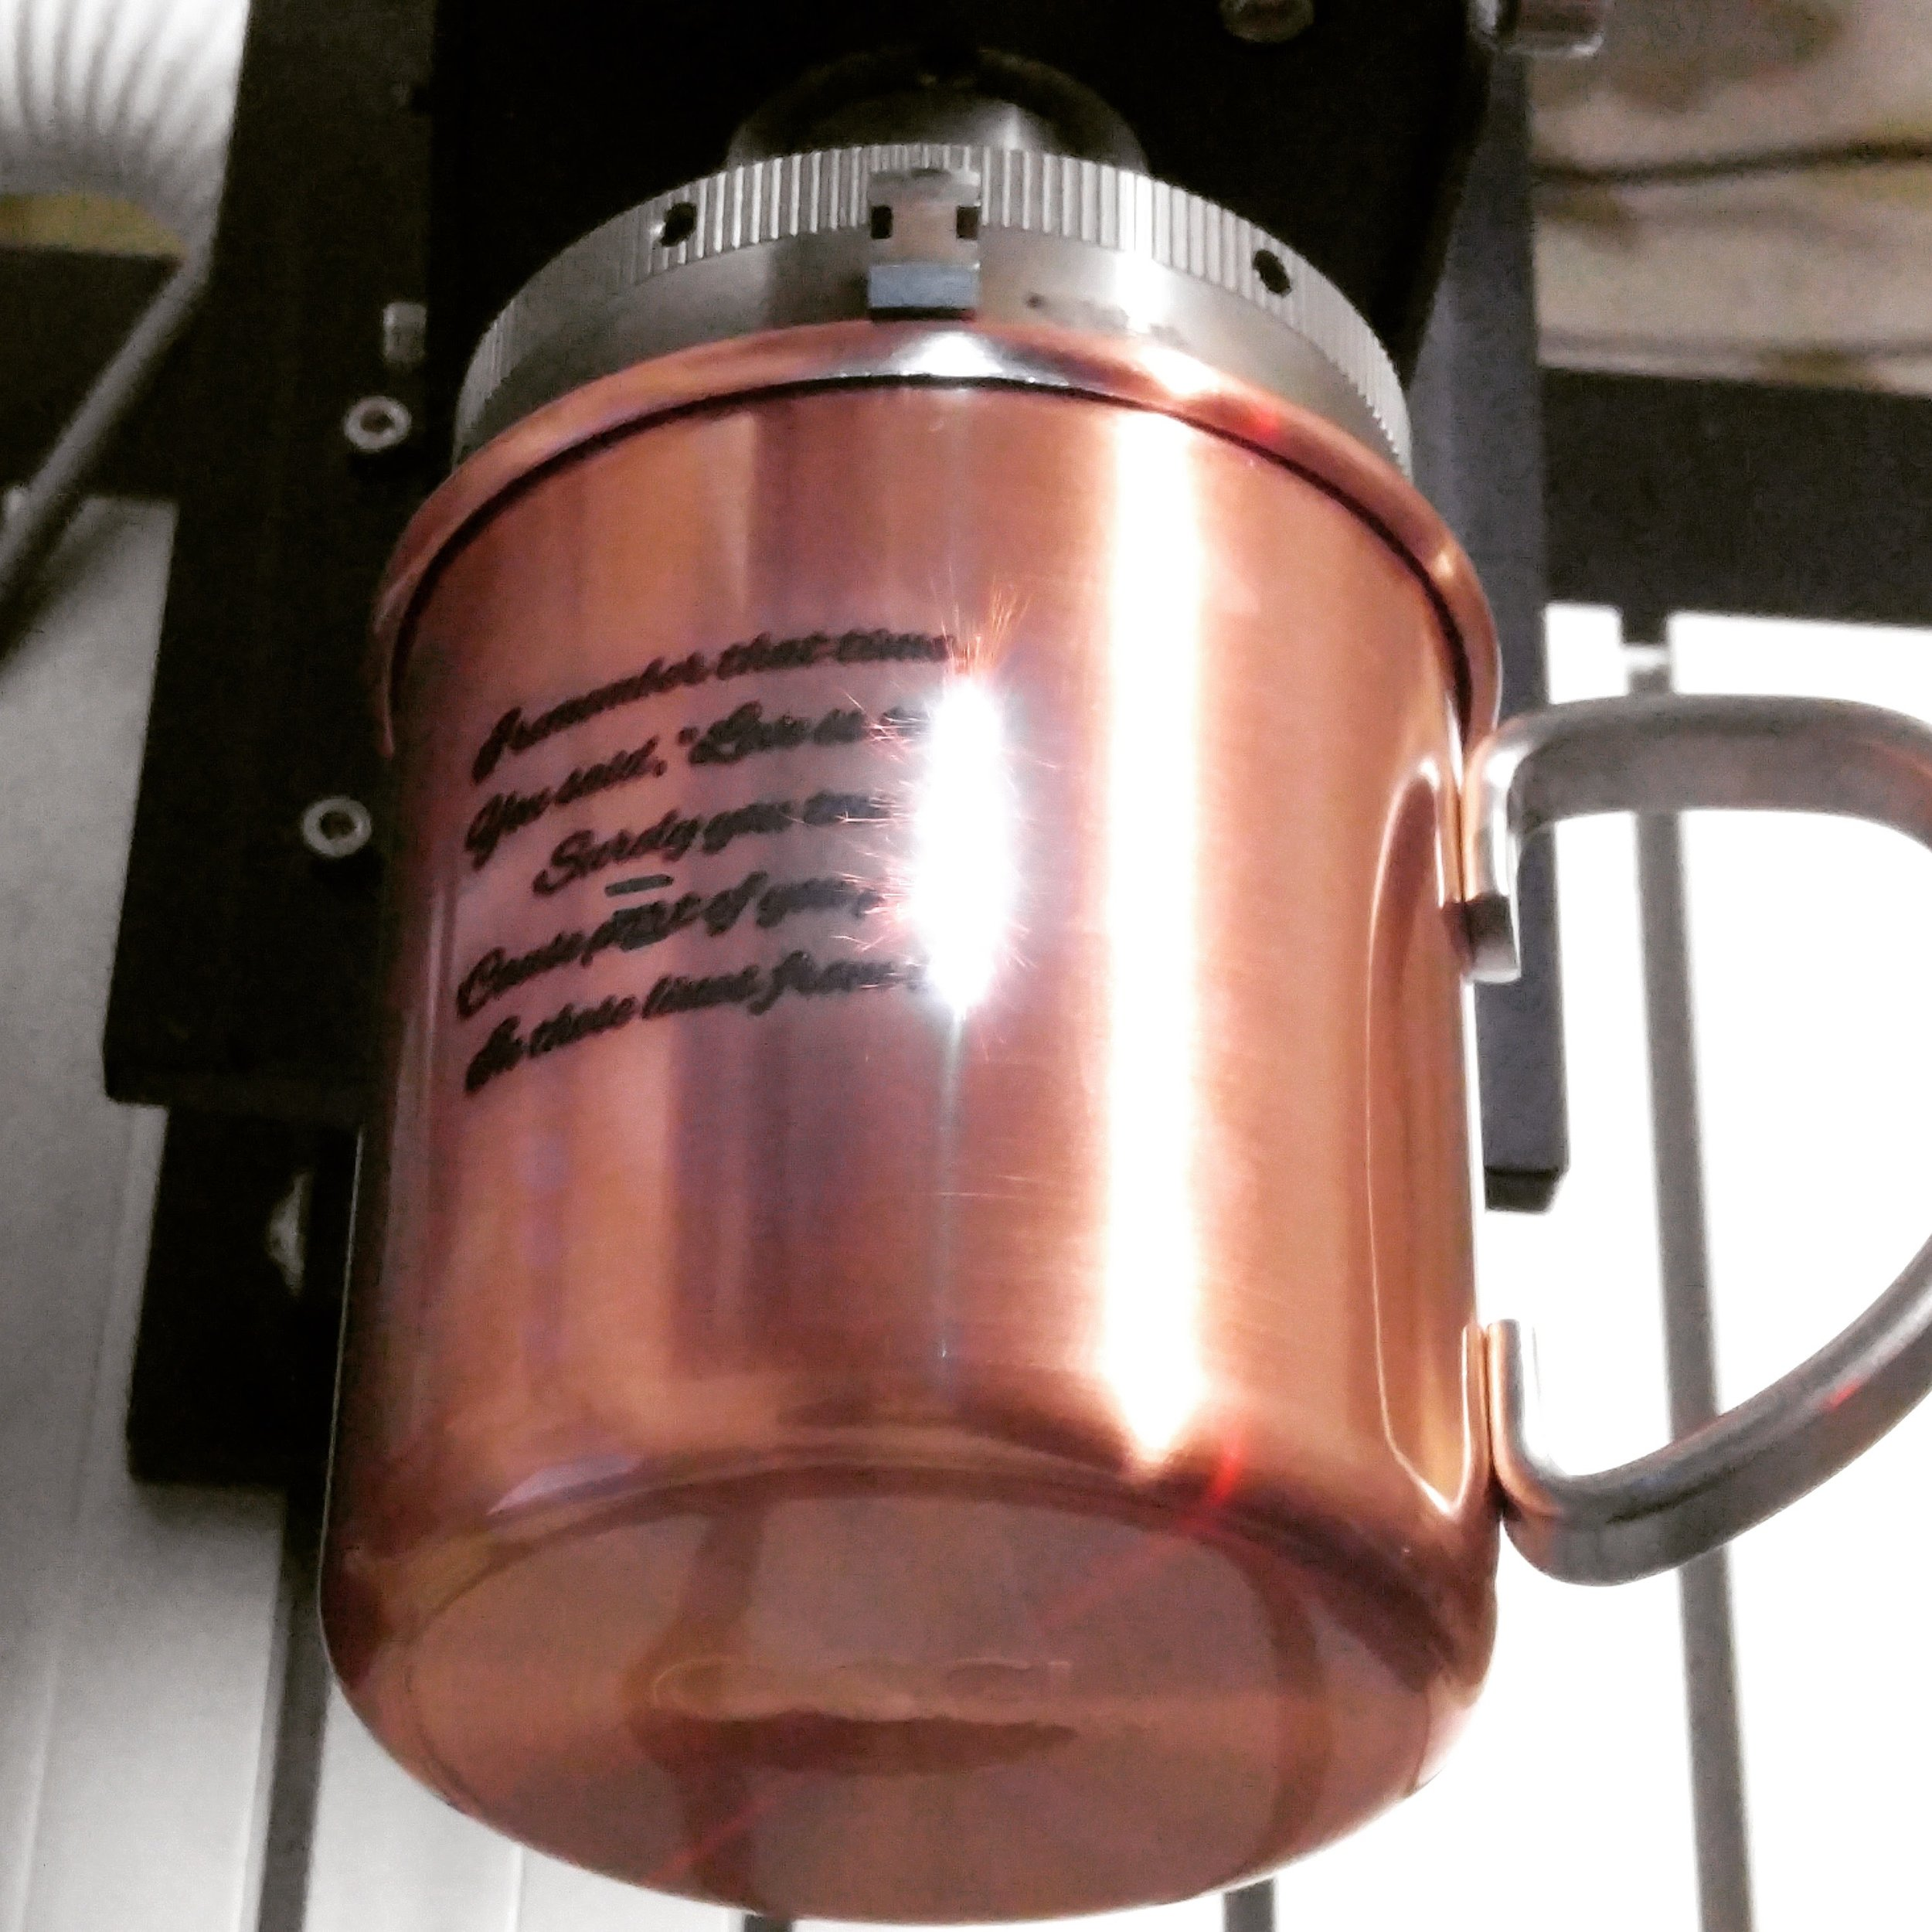 ROTARY - Allowing for rings and mugs and round things to be engraved in a circular fashion.